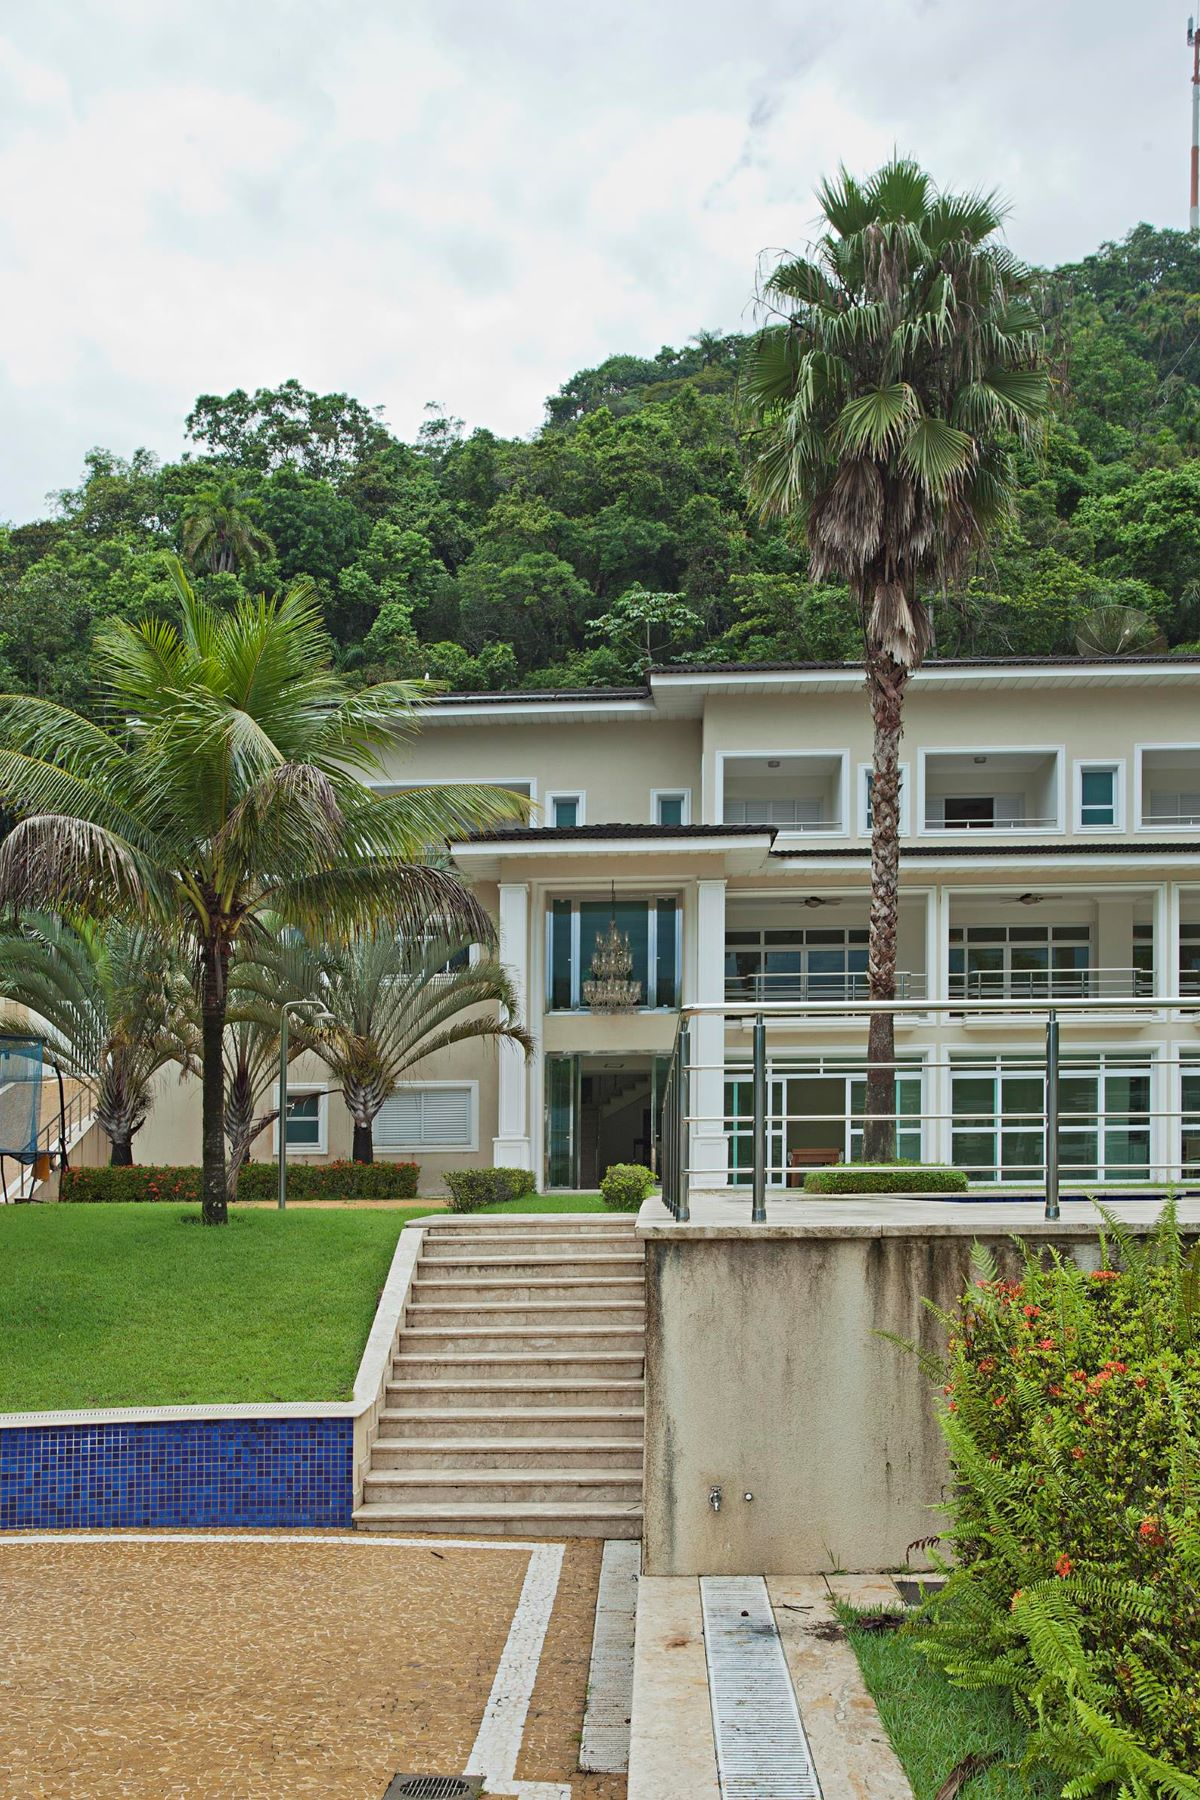 Single Family Home for Sale at Luxurious House at Marina Guarujá Estrada Guarujá/Bertioga Guaruja, Sao Paulo, 11443-485 Brazil